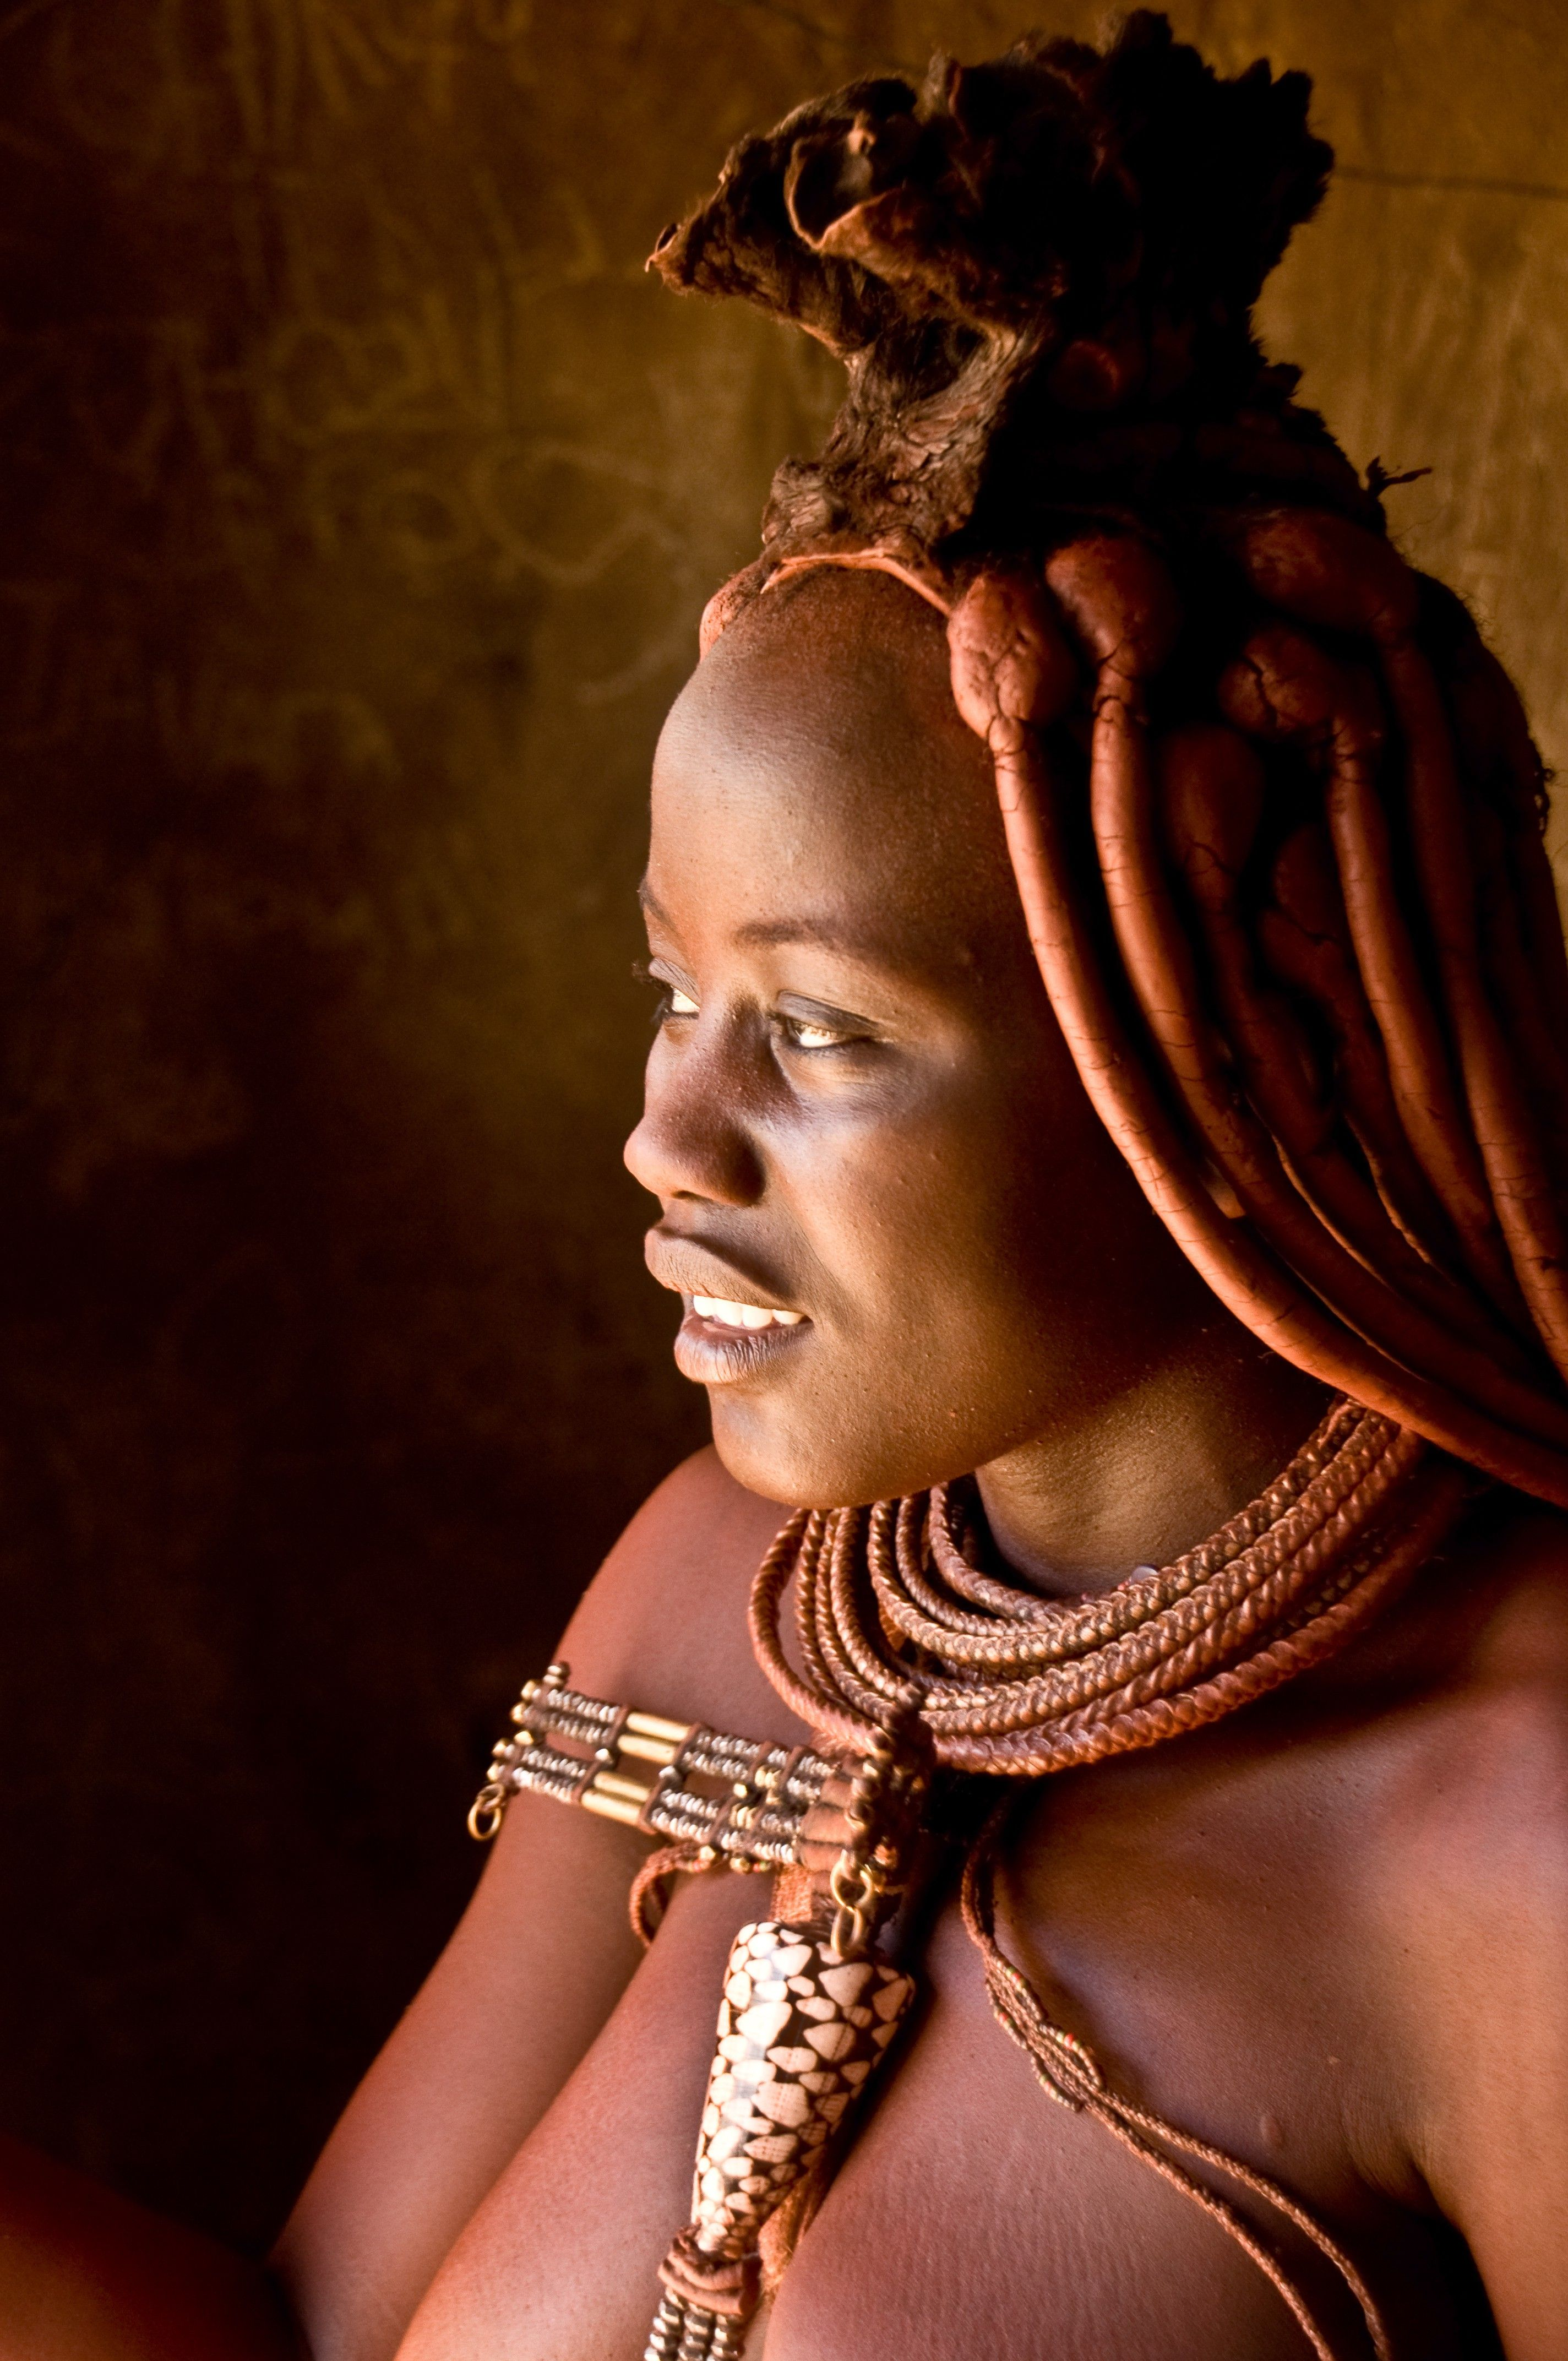 Fast Facts: The Himba of Namibia - Namibia Tourism Board